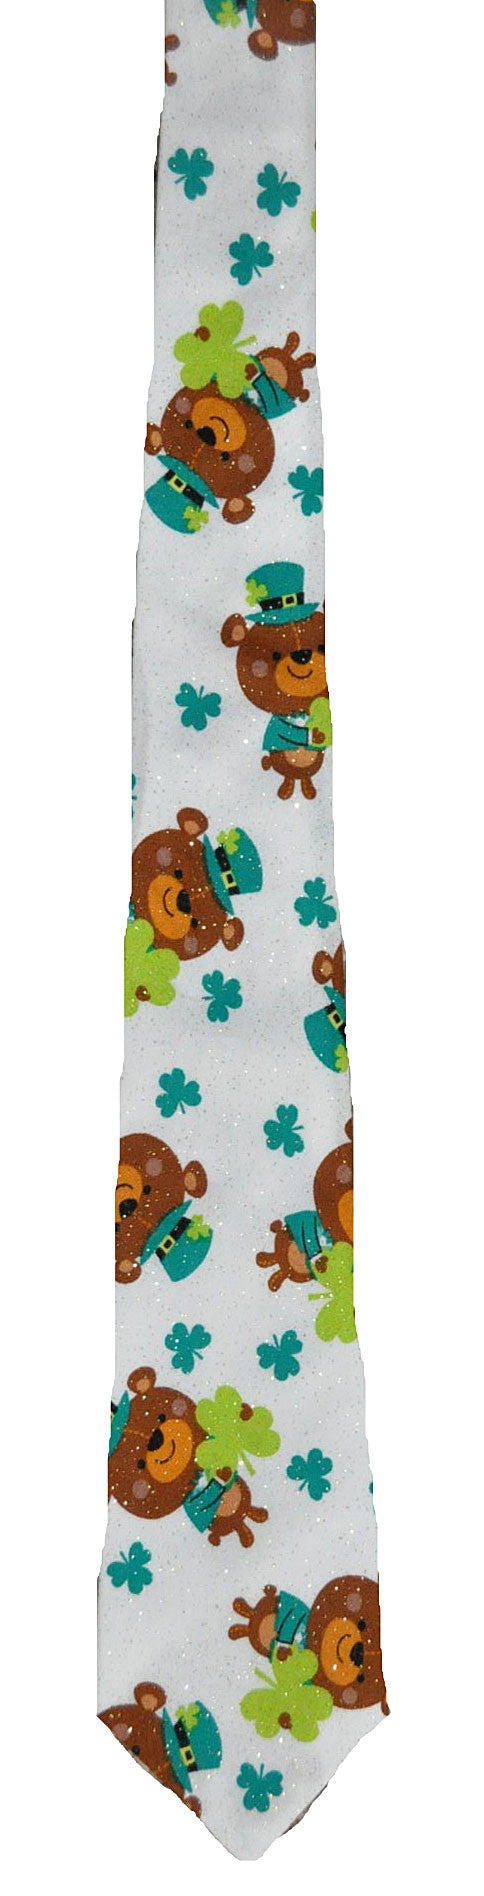 Teddy Bears and Shamrocks - Handmade Men's Necktie